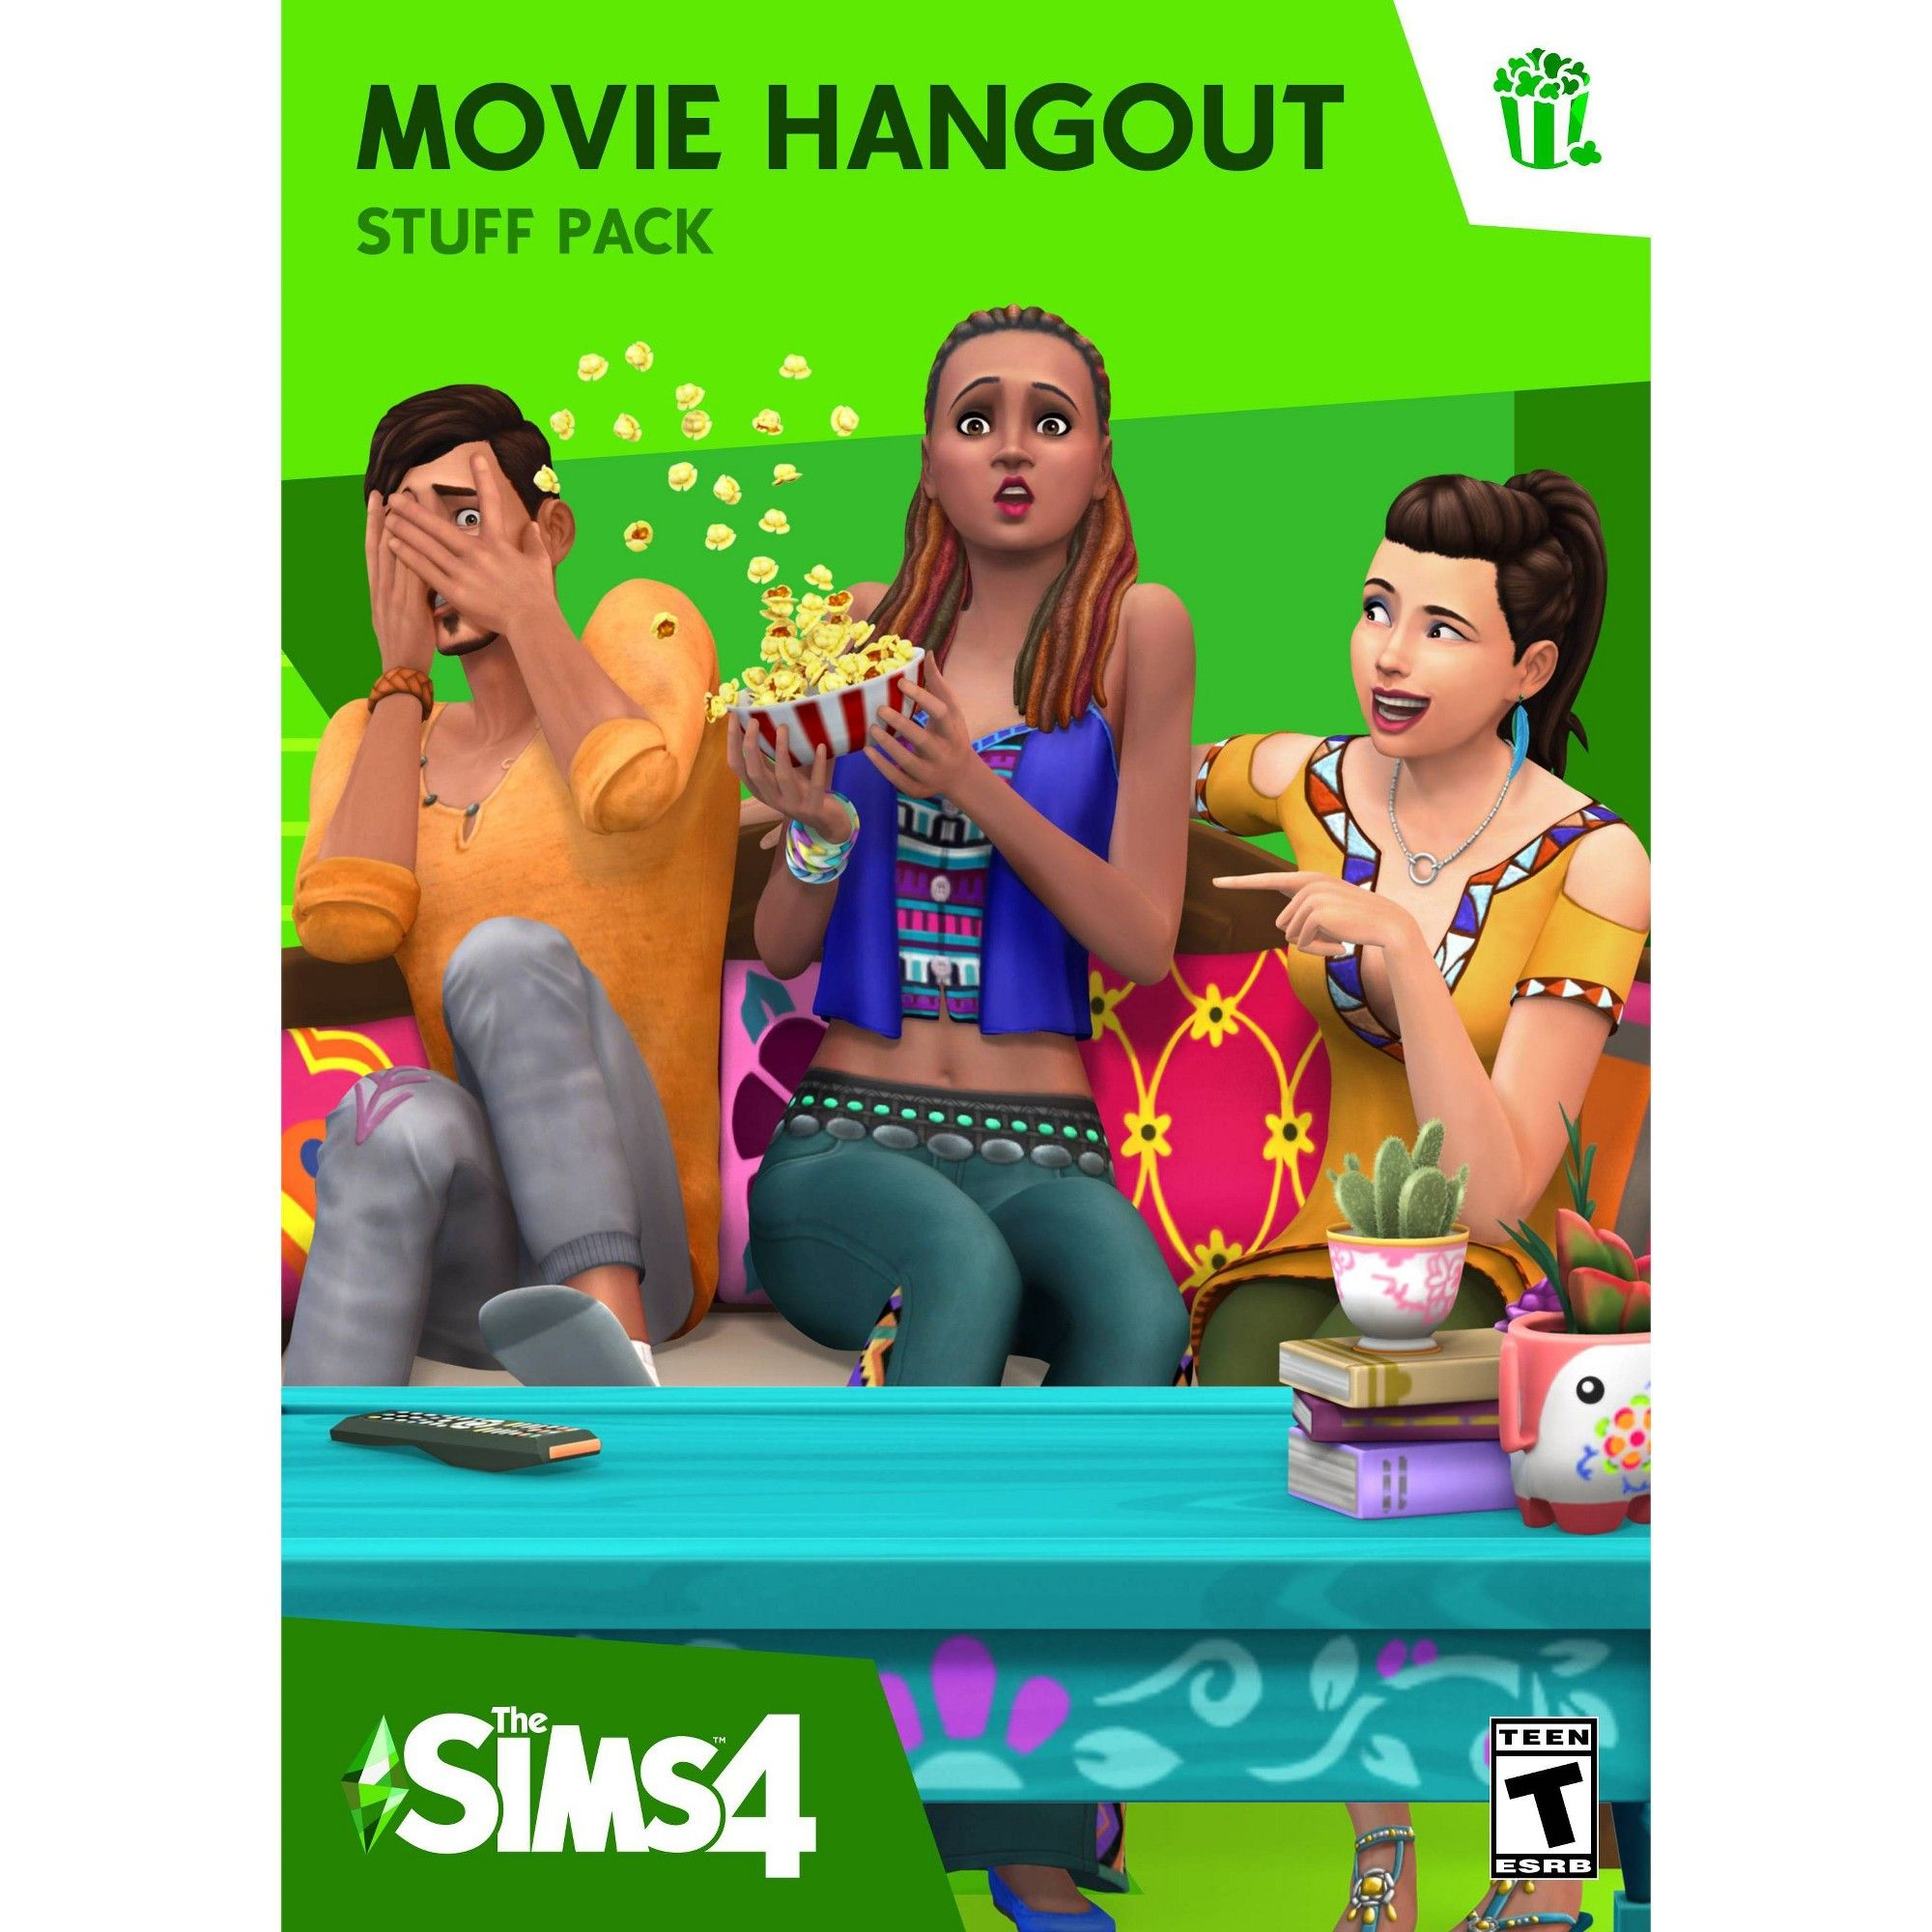 The Sims 4 Movie Hangout Stuff Pack PC Game (Digital